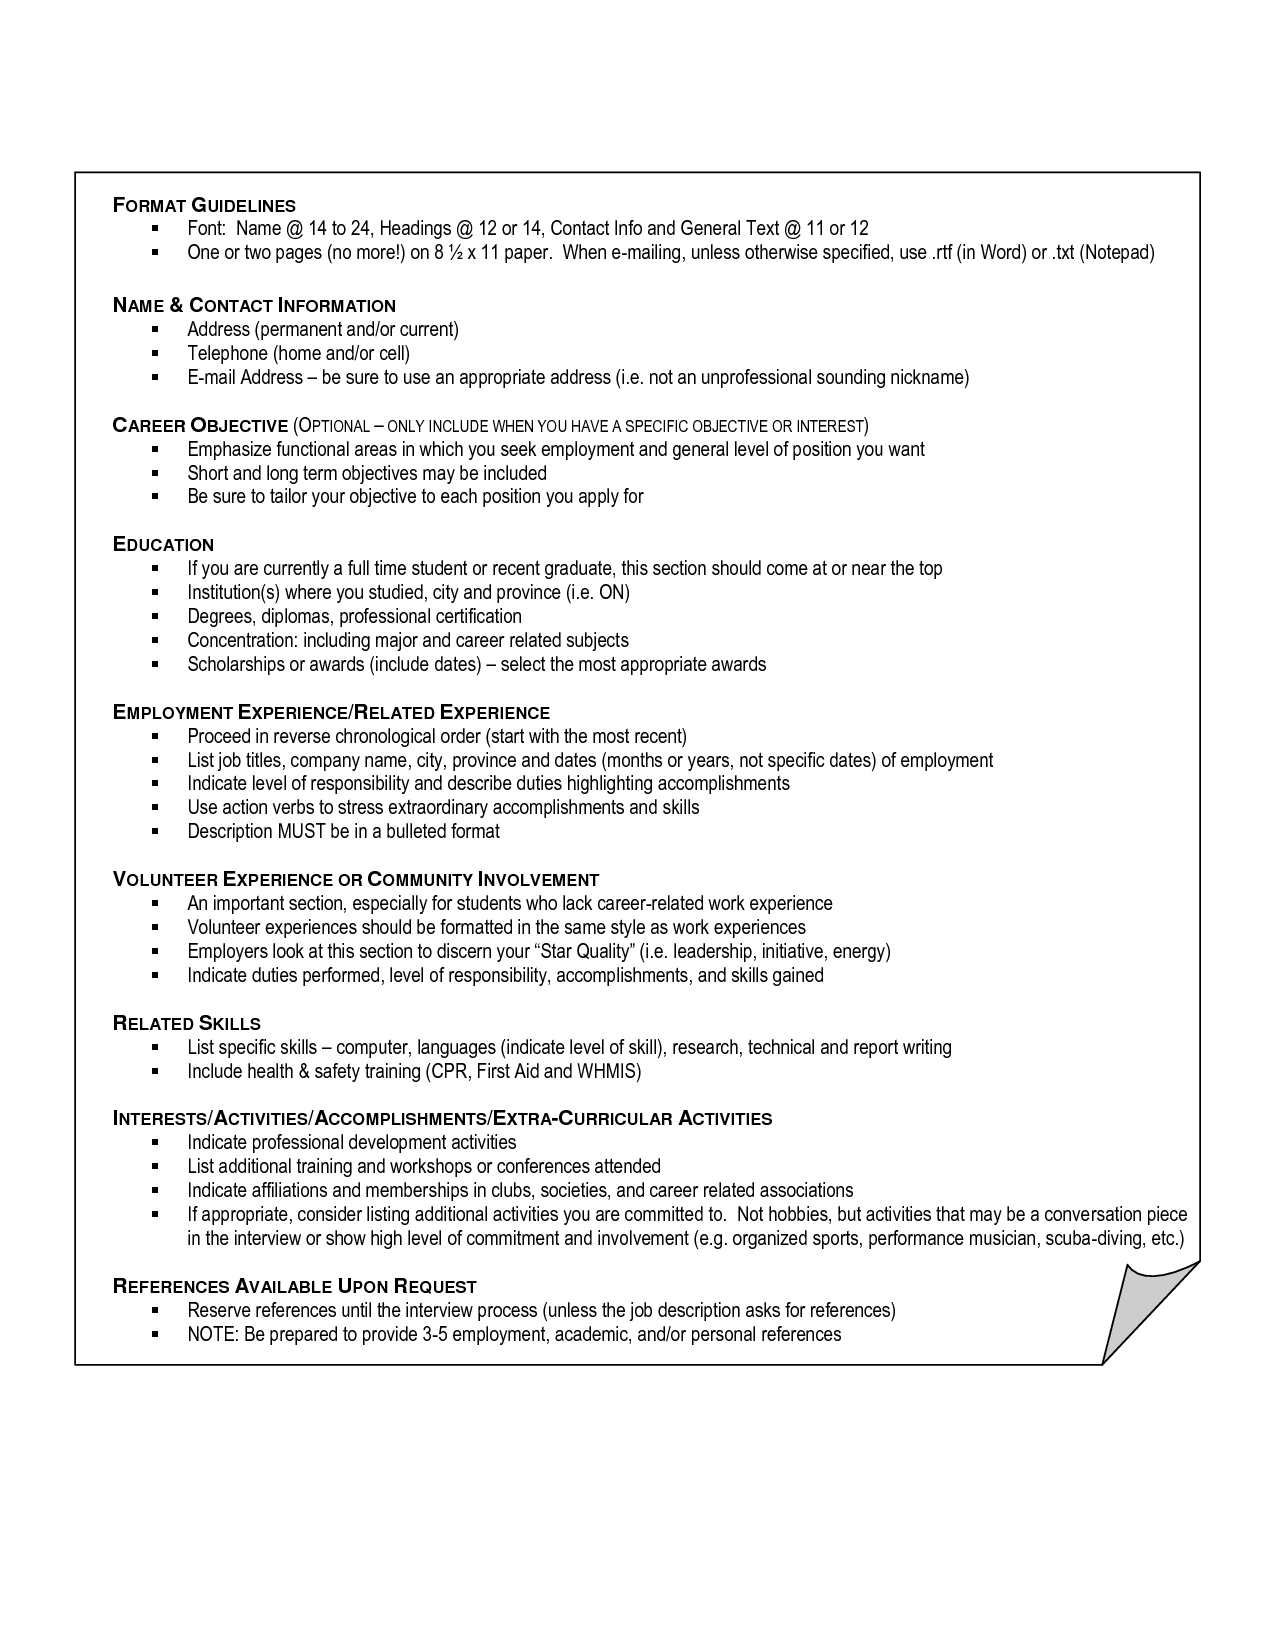 Resume Interests Examples Resume Interests Examples And Get Inspiration Create Good Hobby